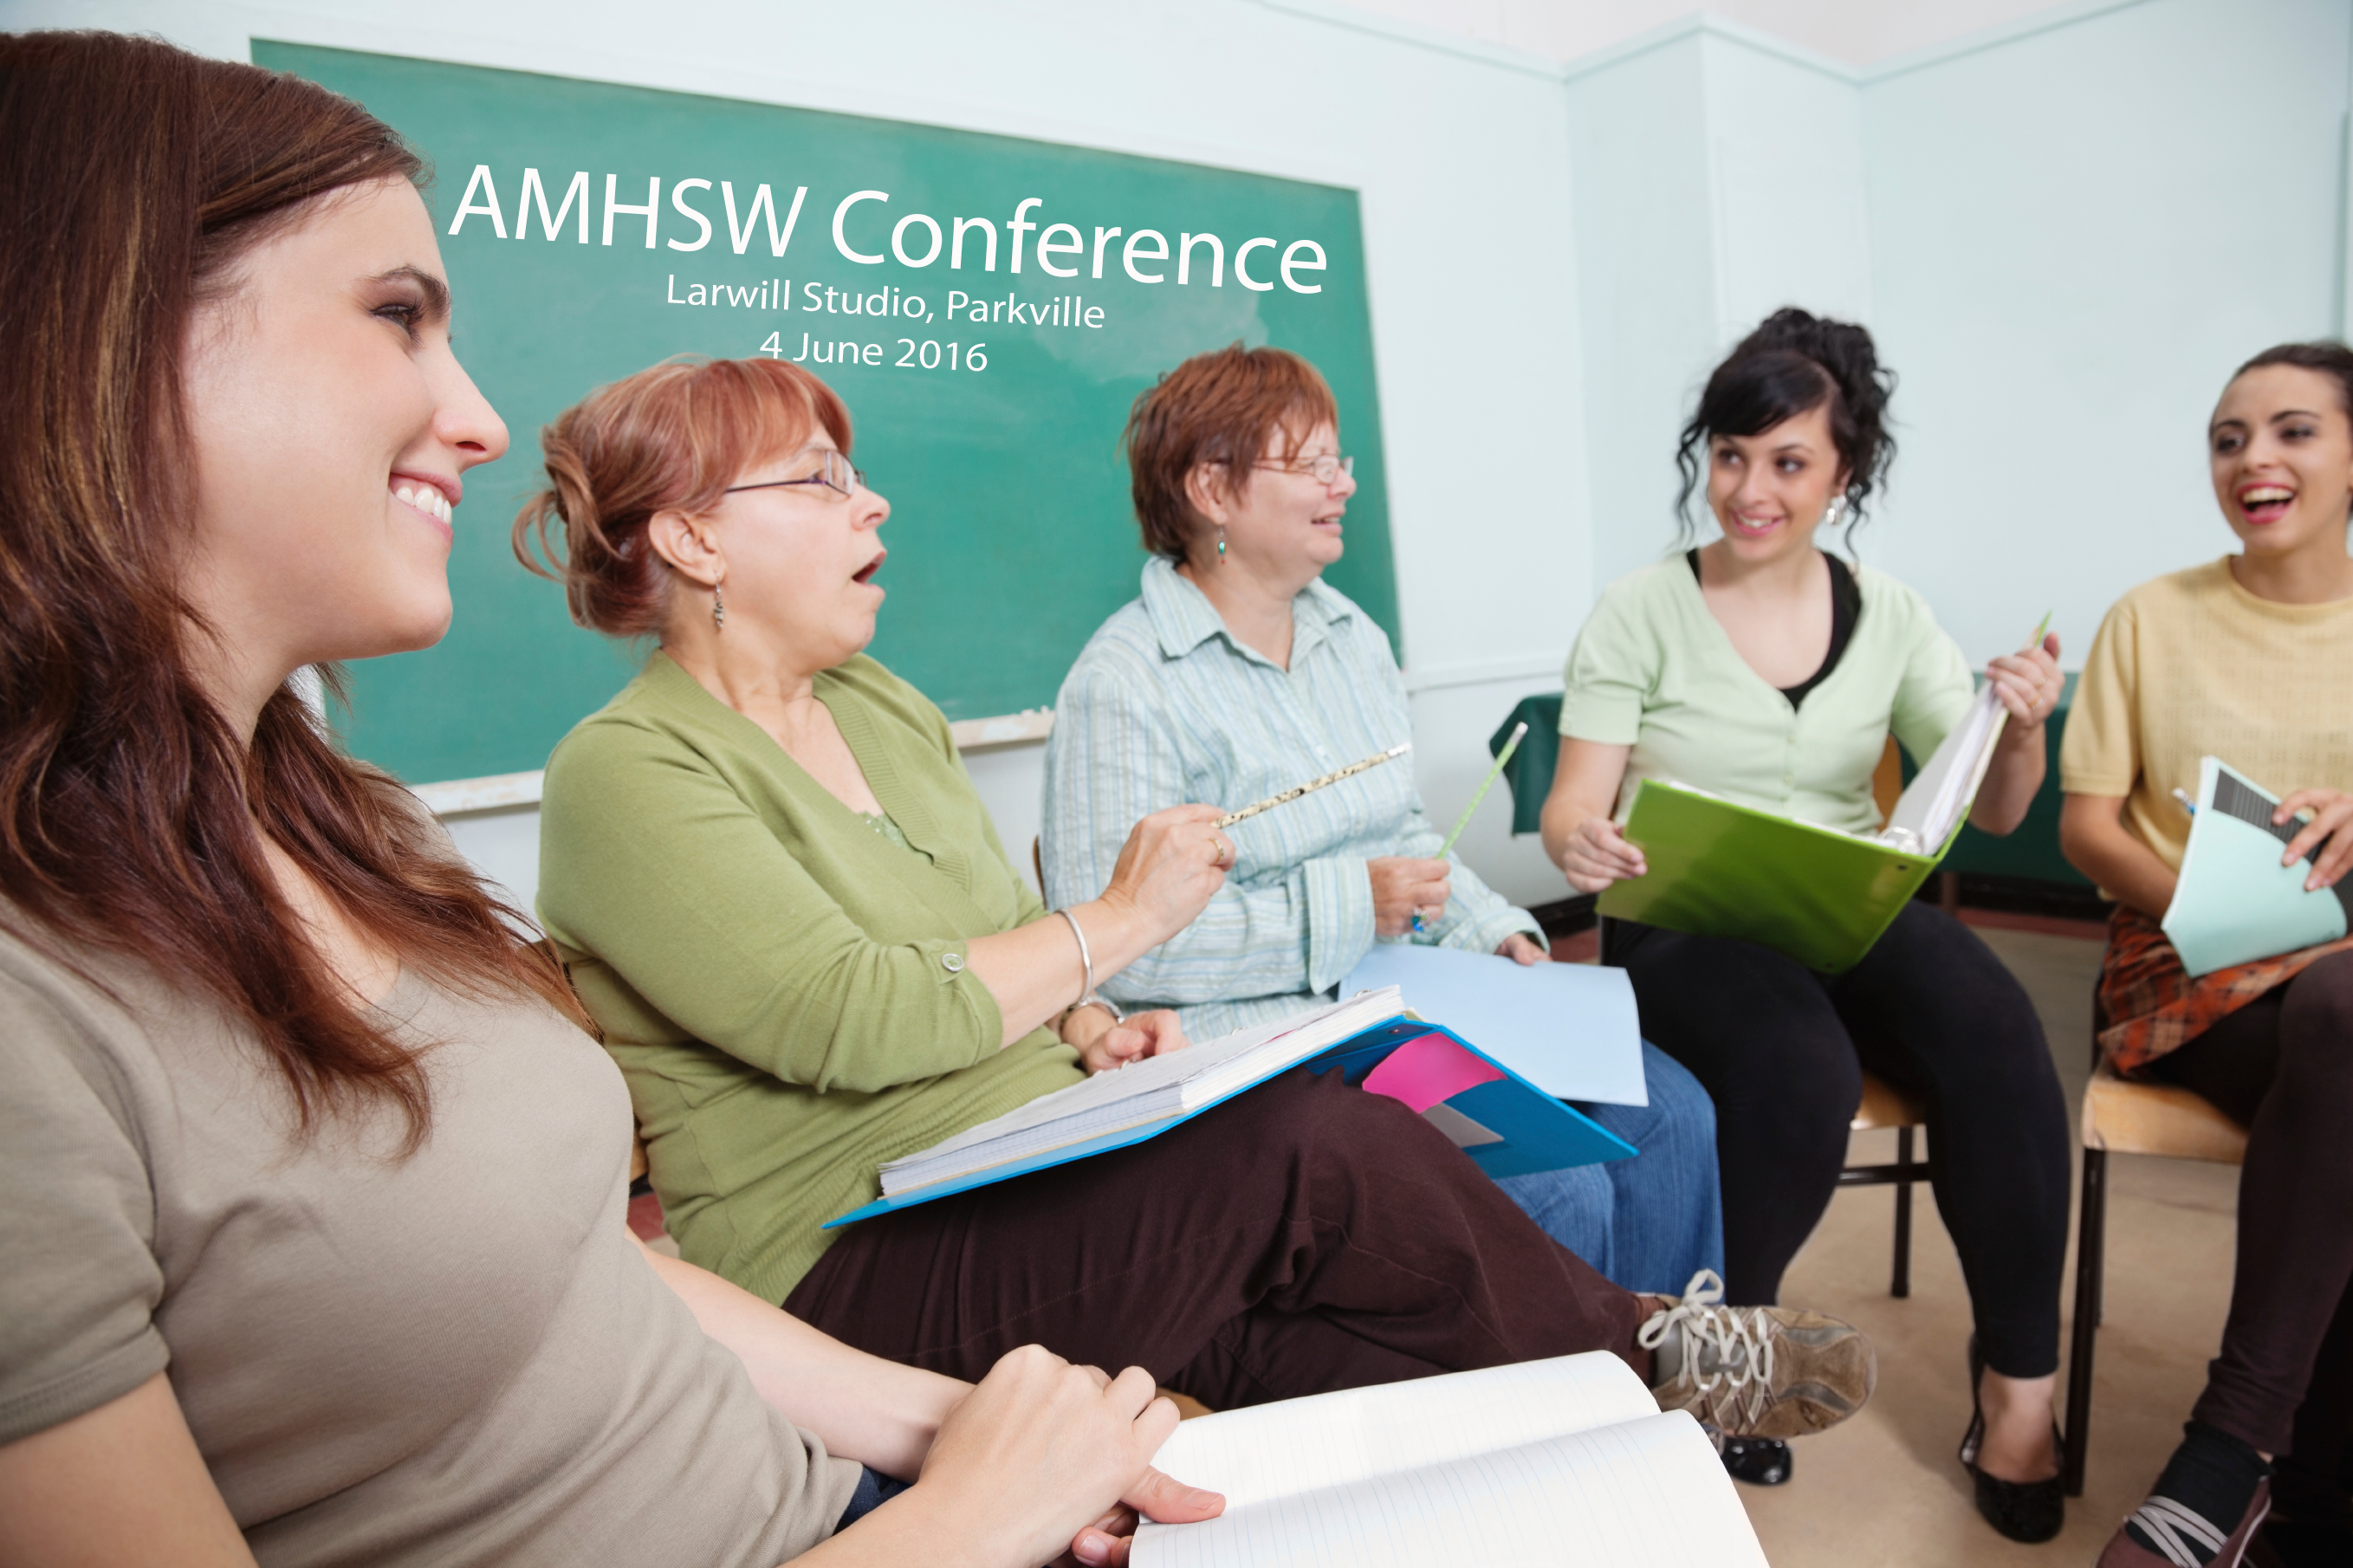 AMHSW Conference